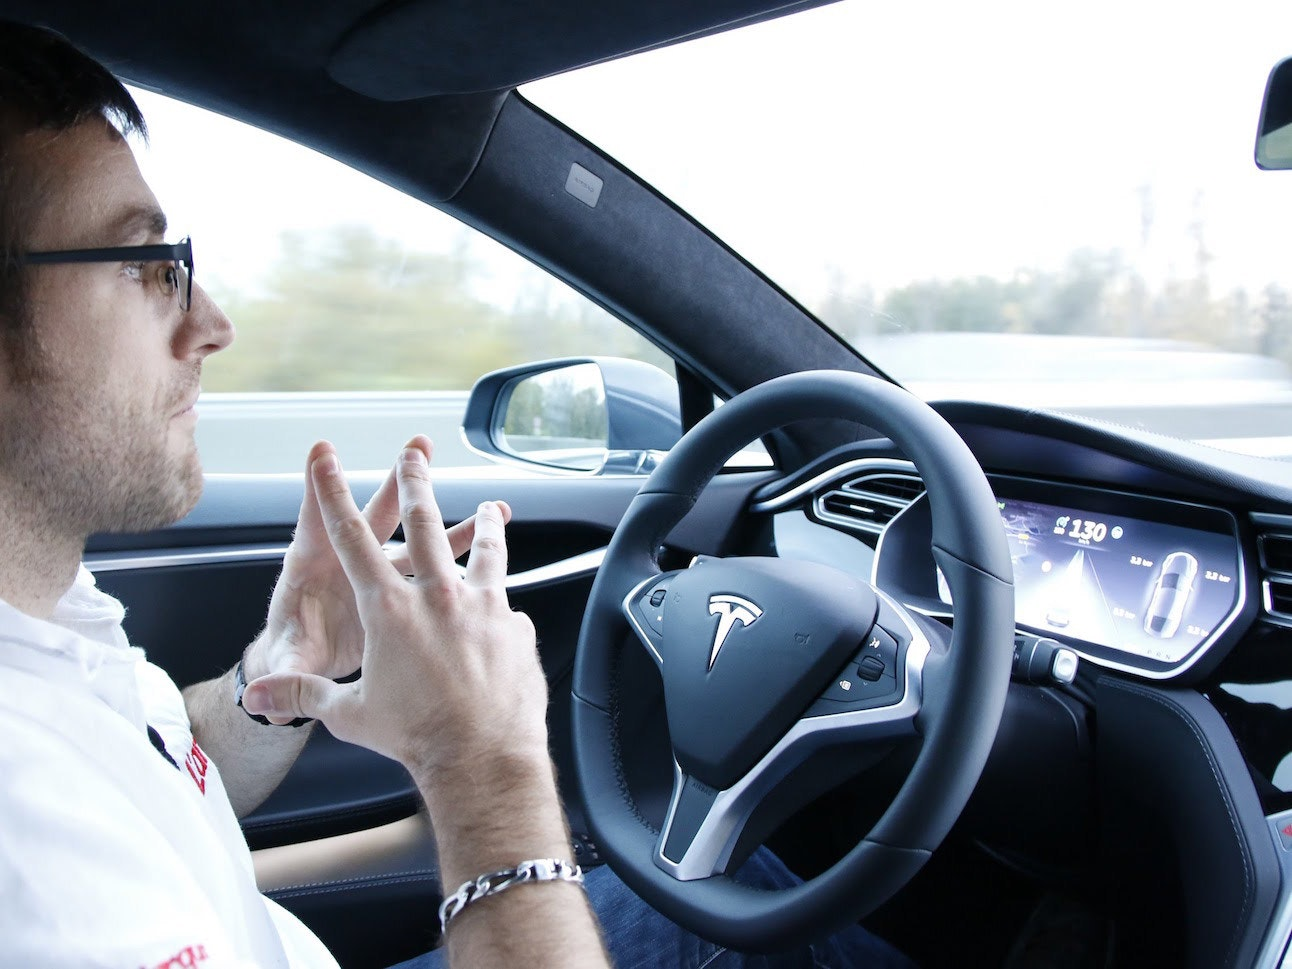 France's Driver's Ed Failure Rate Proves Need for Self-Driving Car Adoption